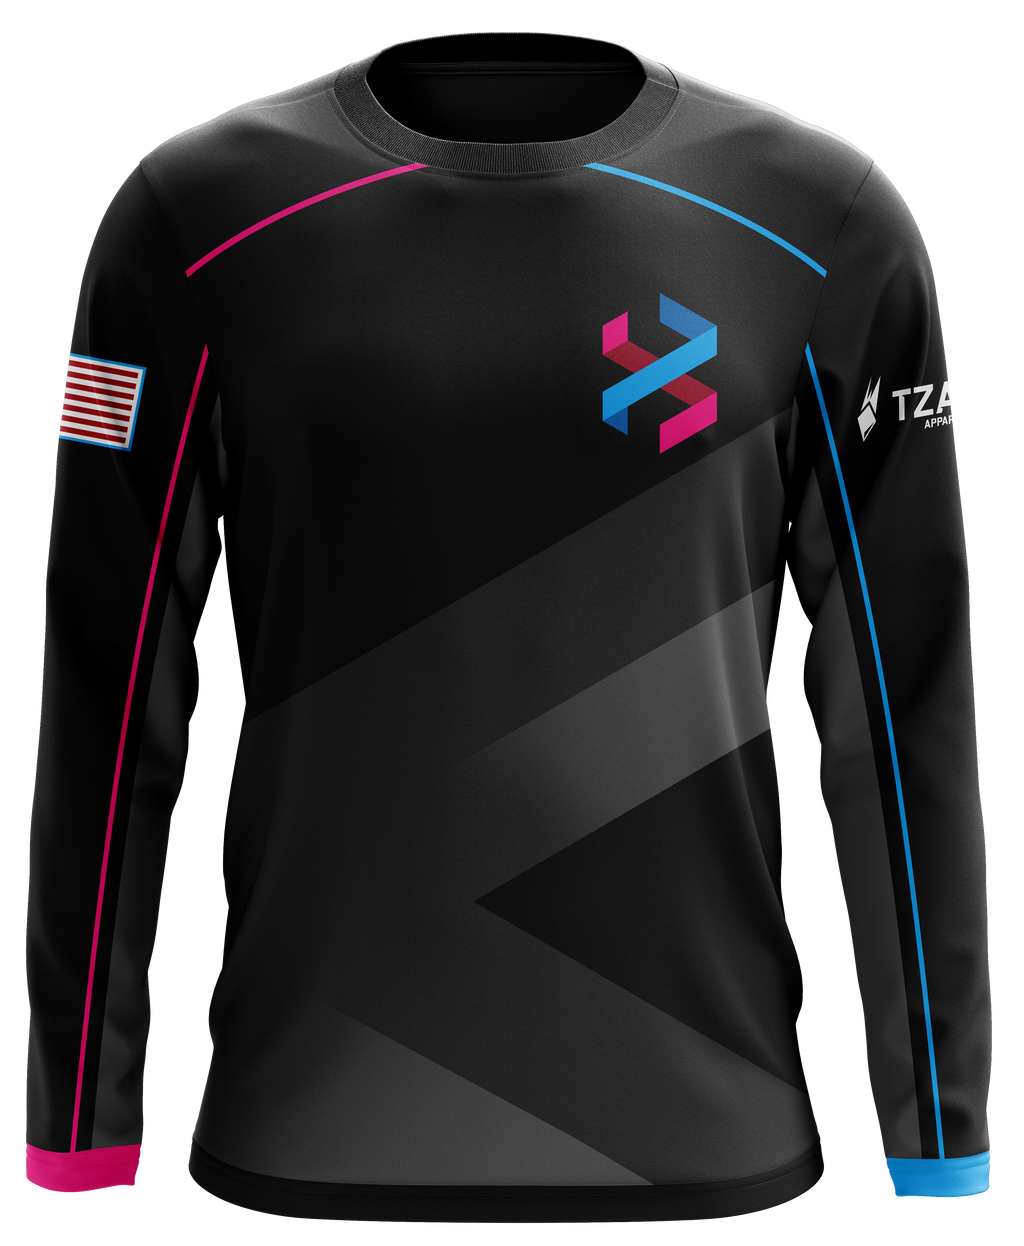 8K Esports Long Sleeve Jersey